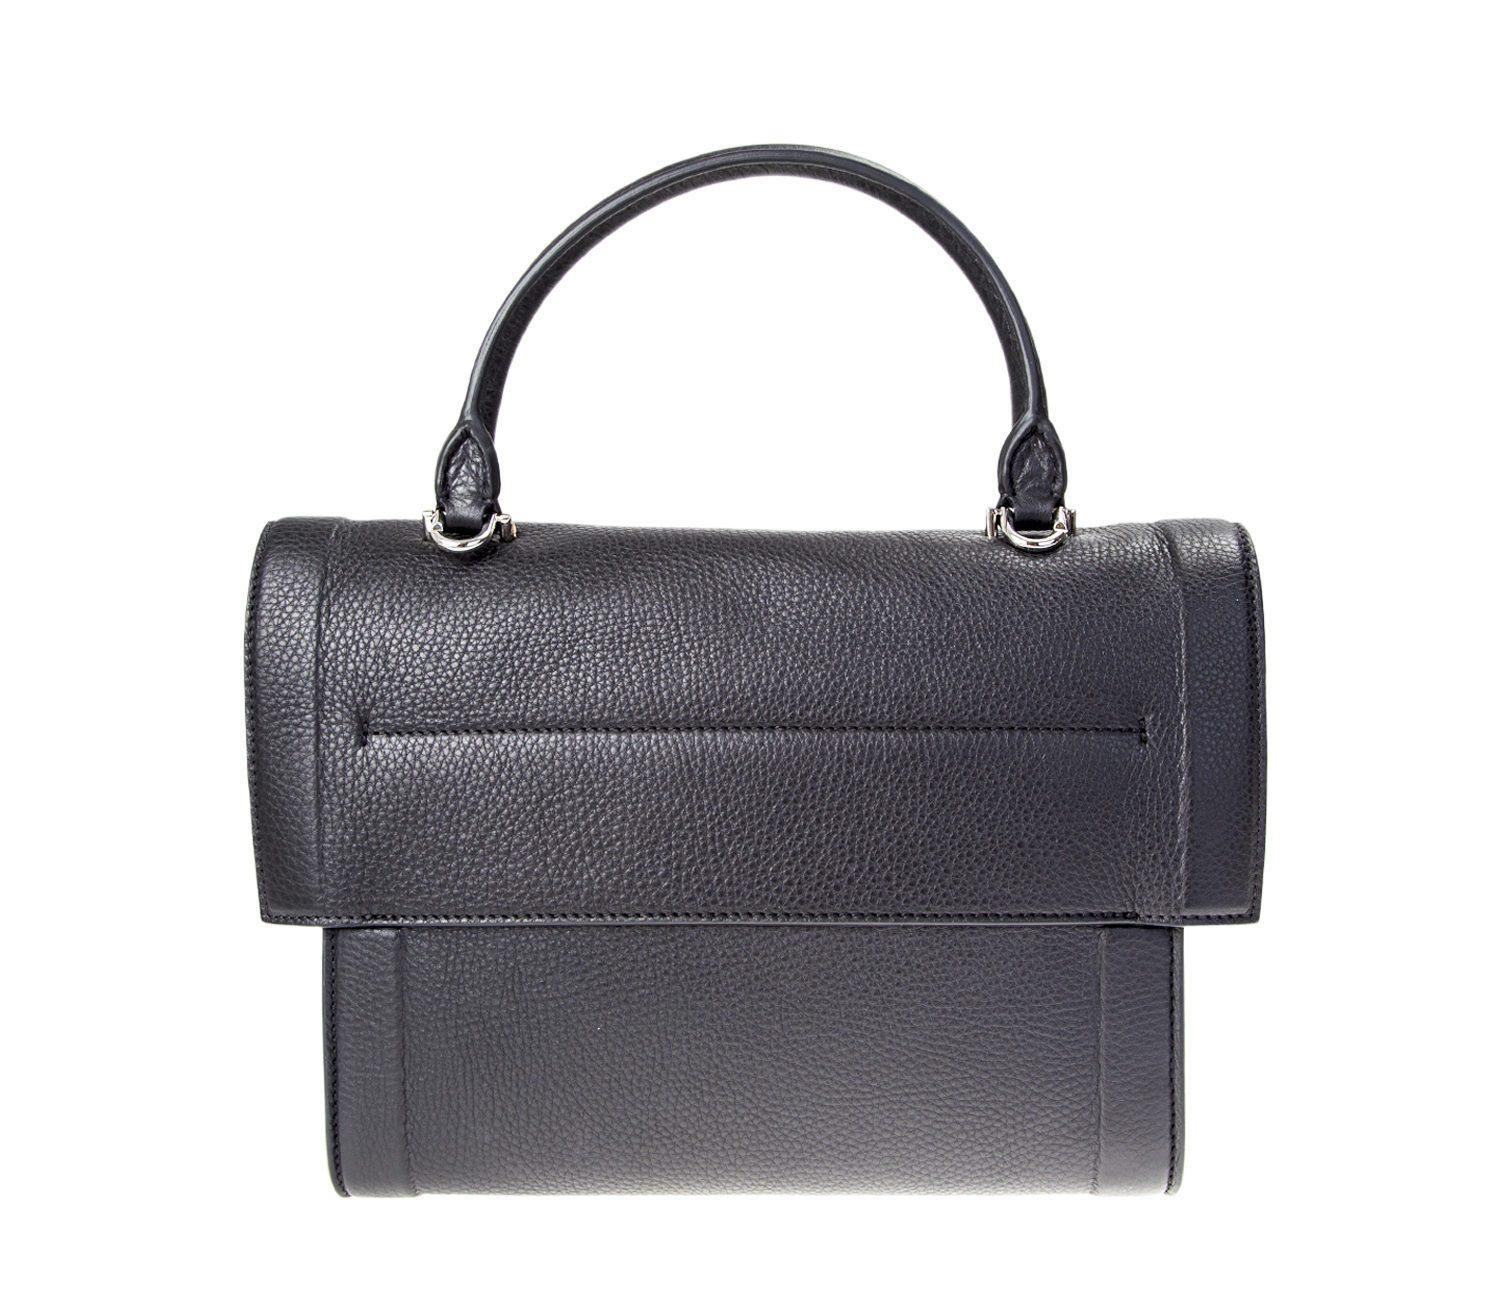 904ba48bbfb8 Lyst - Givenchy Leather Shark Small Bag in Black